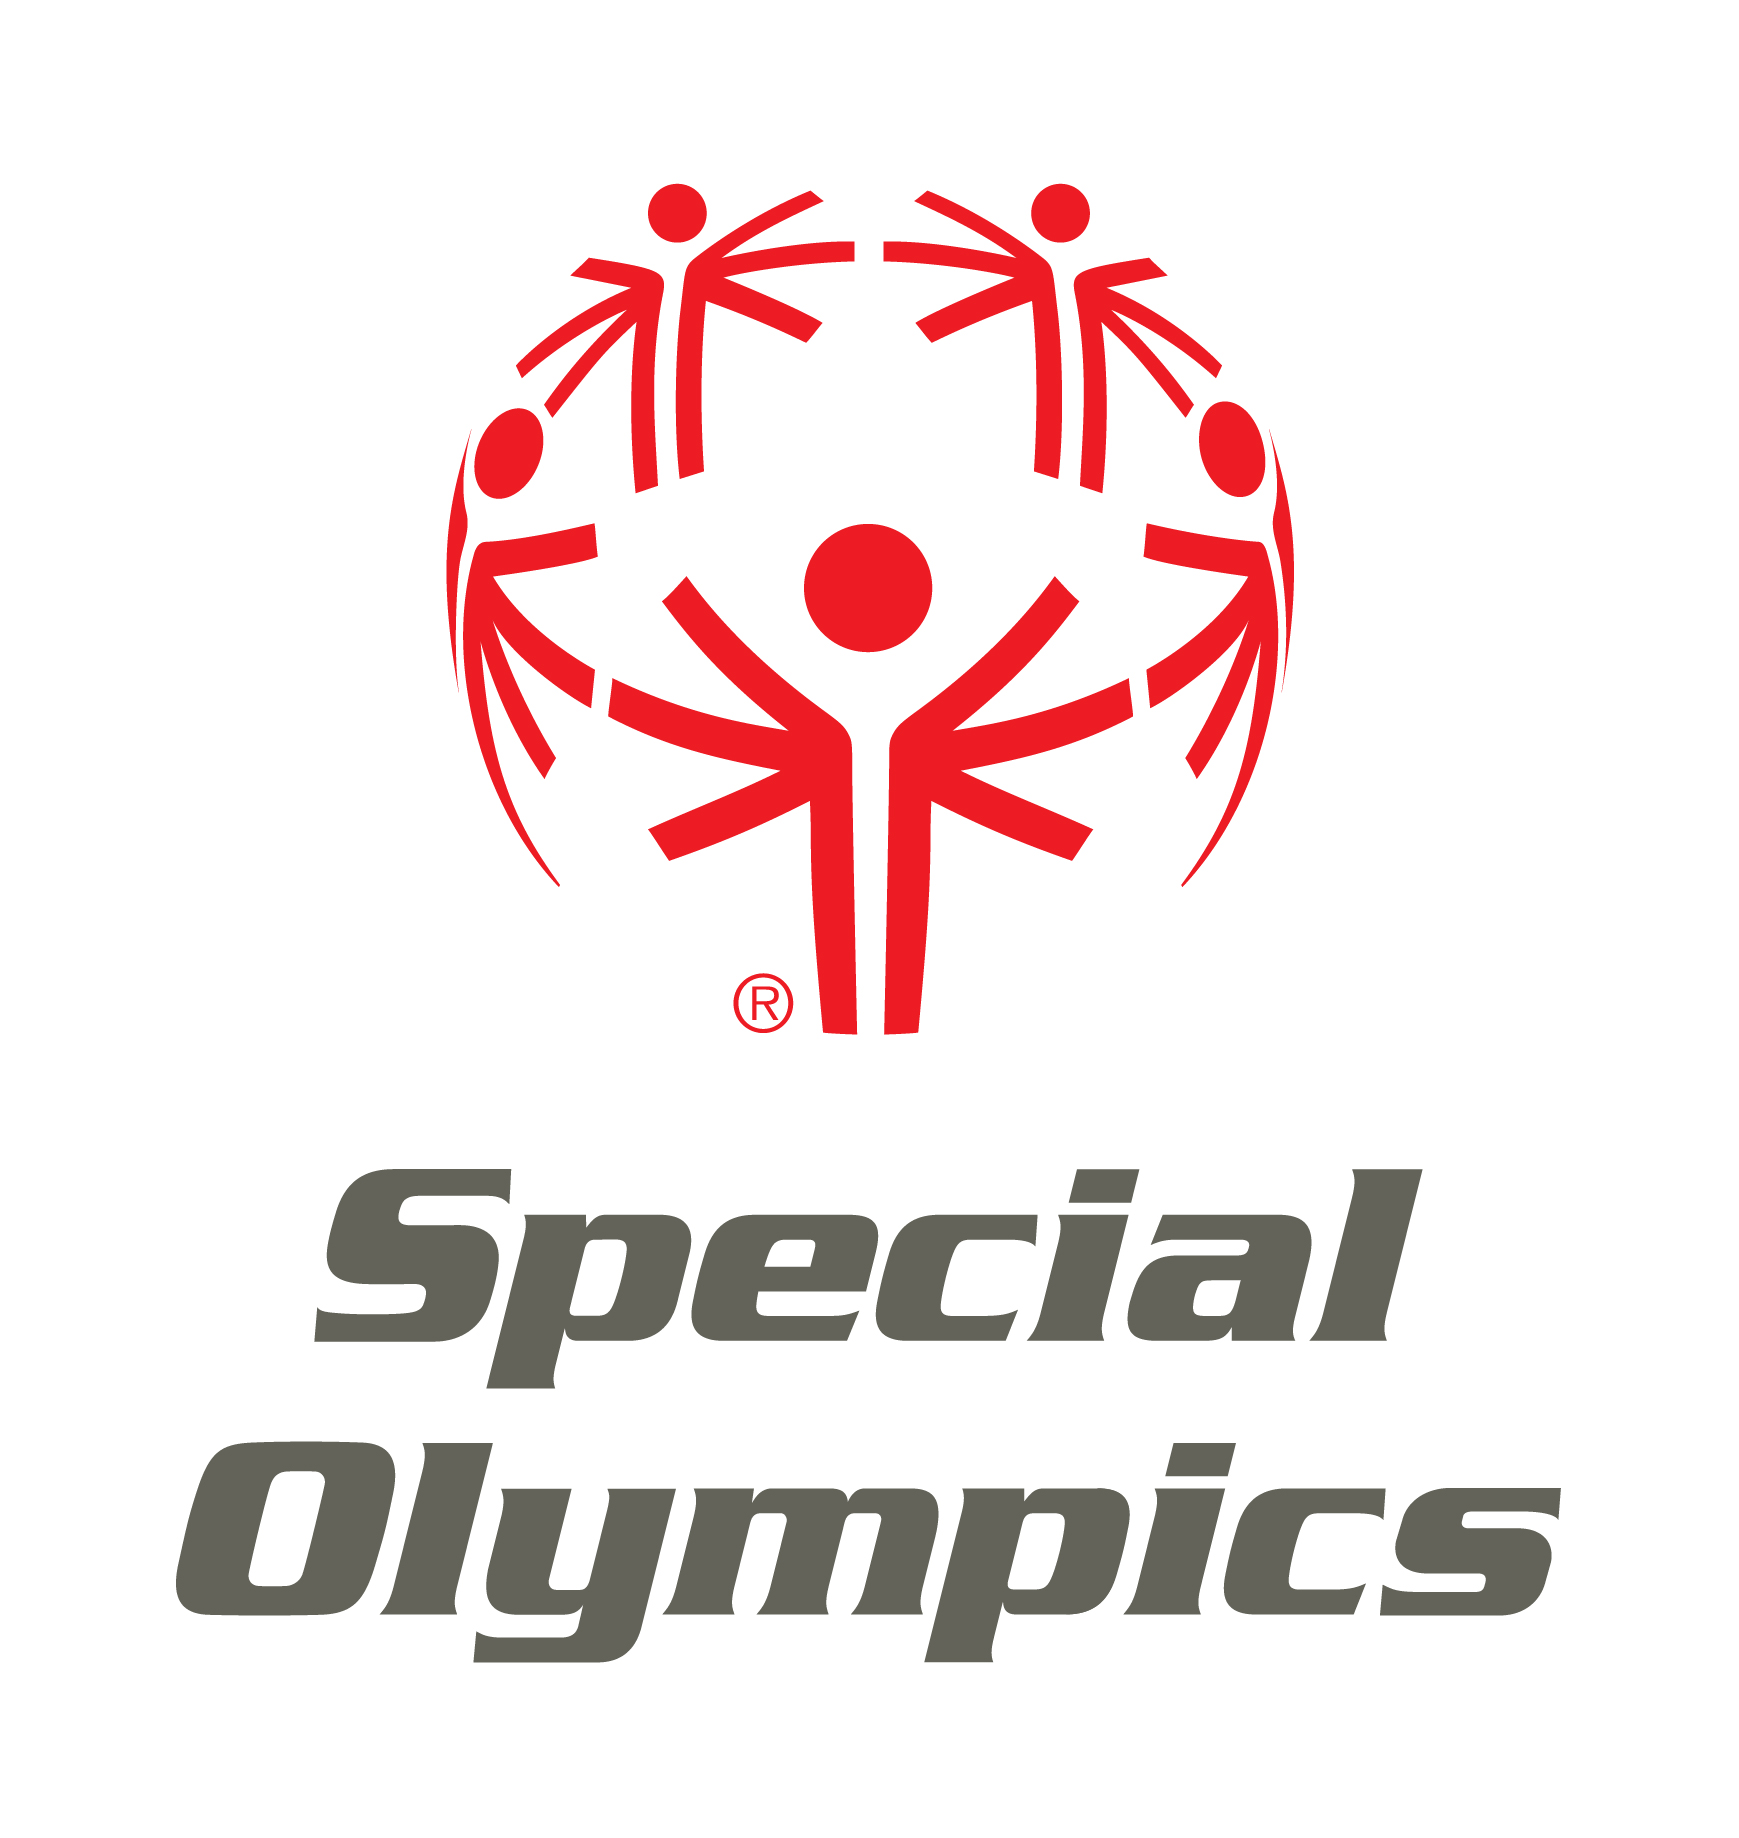 Special Olympics offers children and adults with disabilities year-round sports training and competition.